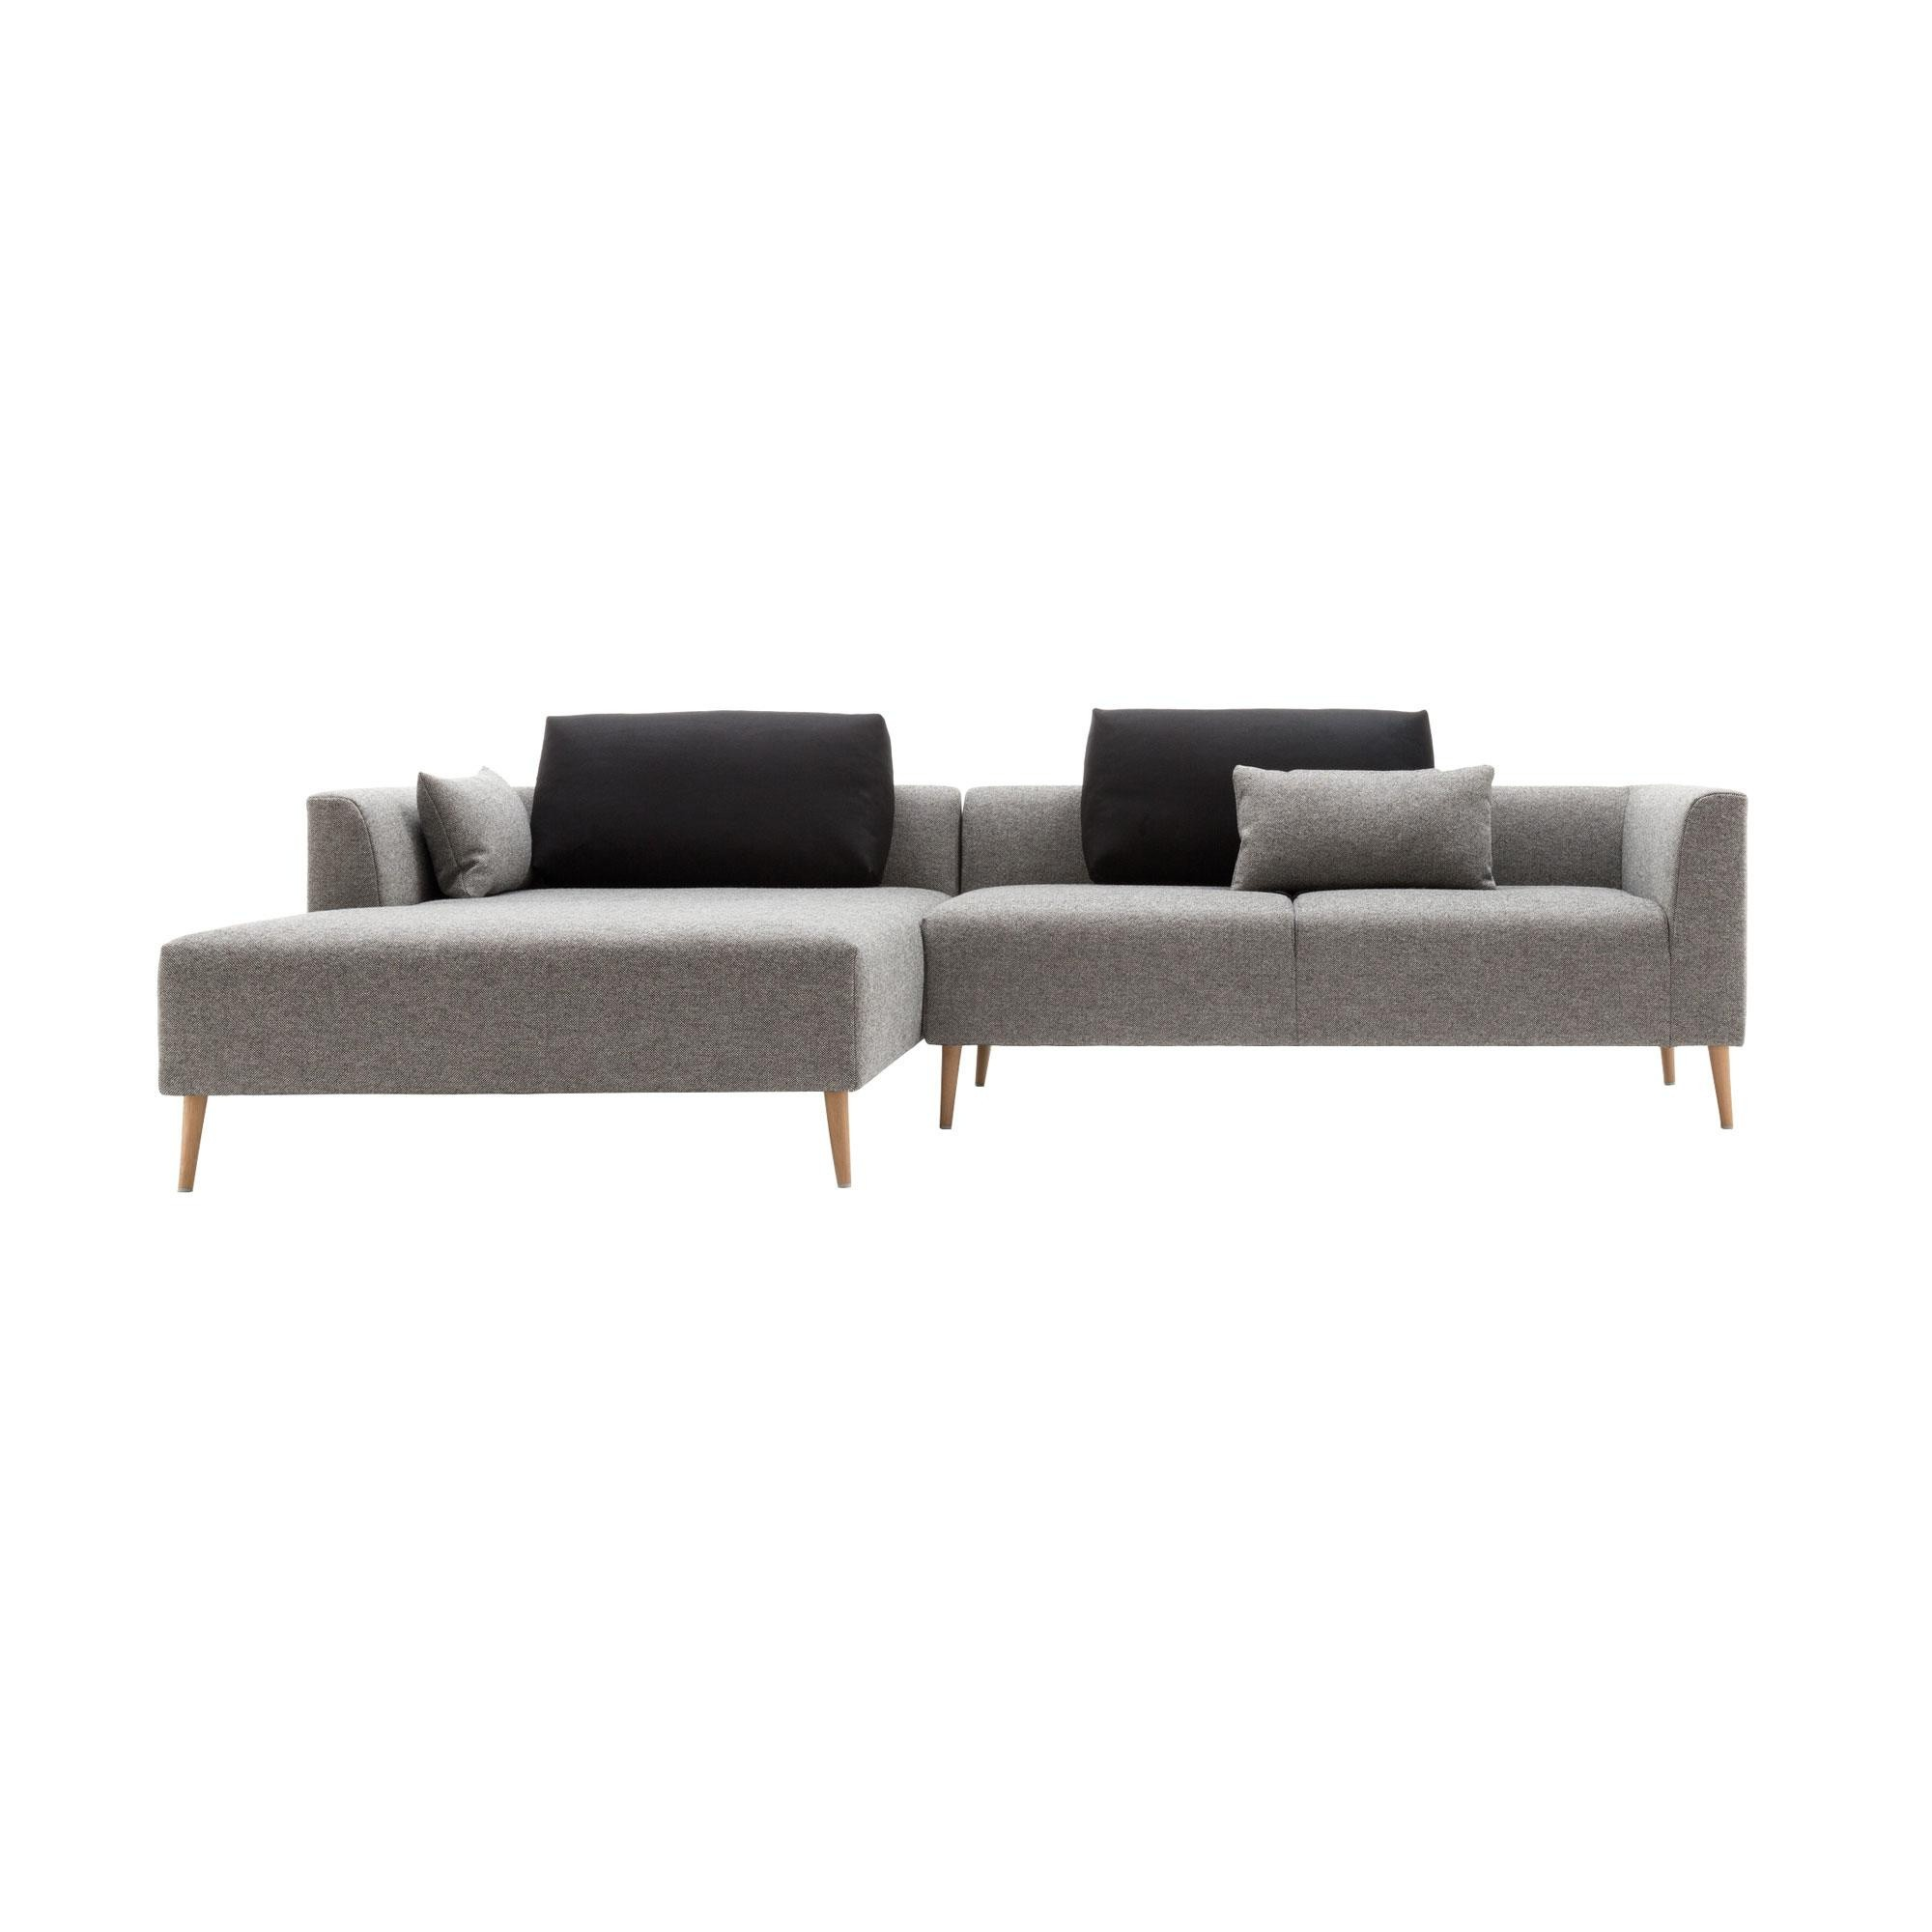 Rolf Benz Sofa Freistil Freistil 162 Lounge Sofa 274x172cm